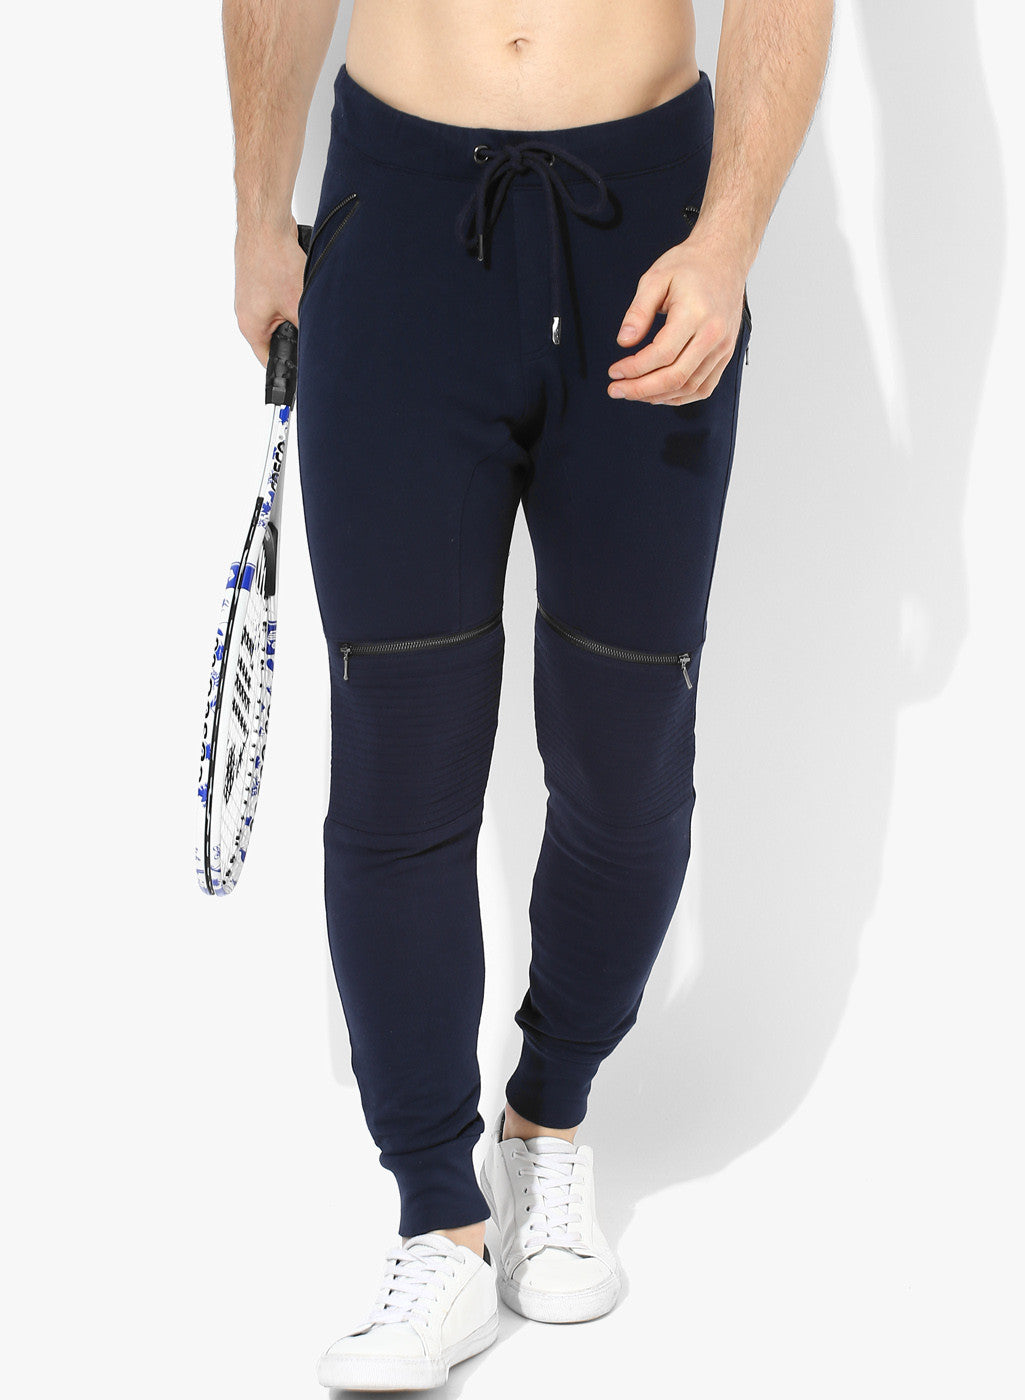 Spiritual Warrior navy joggers for men are both comfortable & high quality. They keep you cool and dry. These navy sweatpants are great for yoga, gym, relaxing